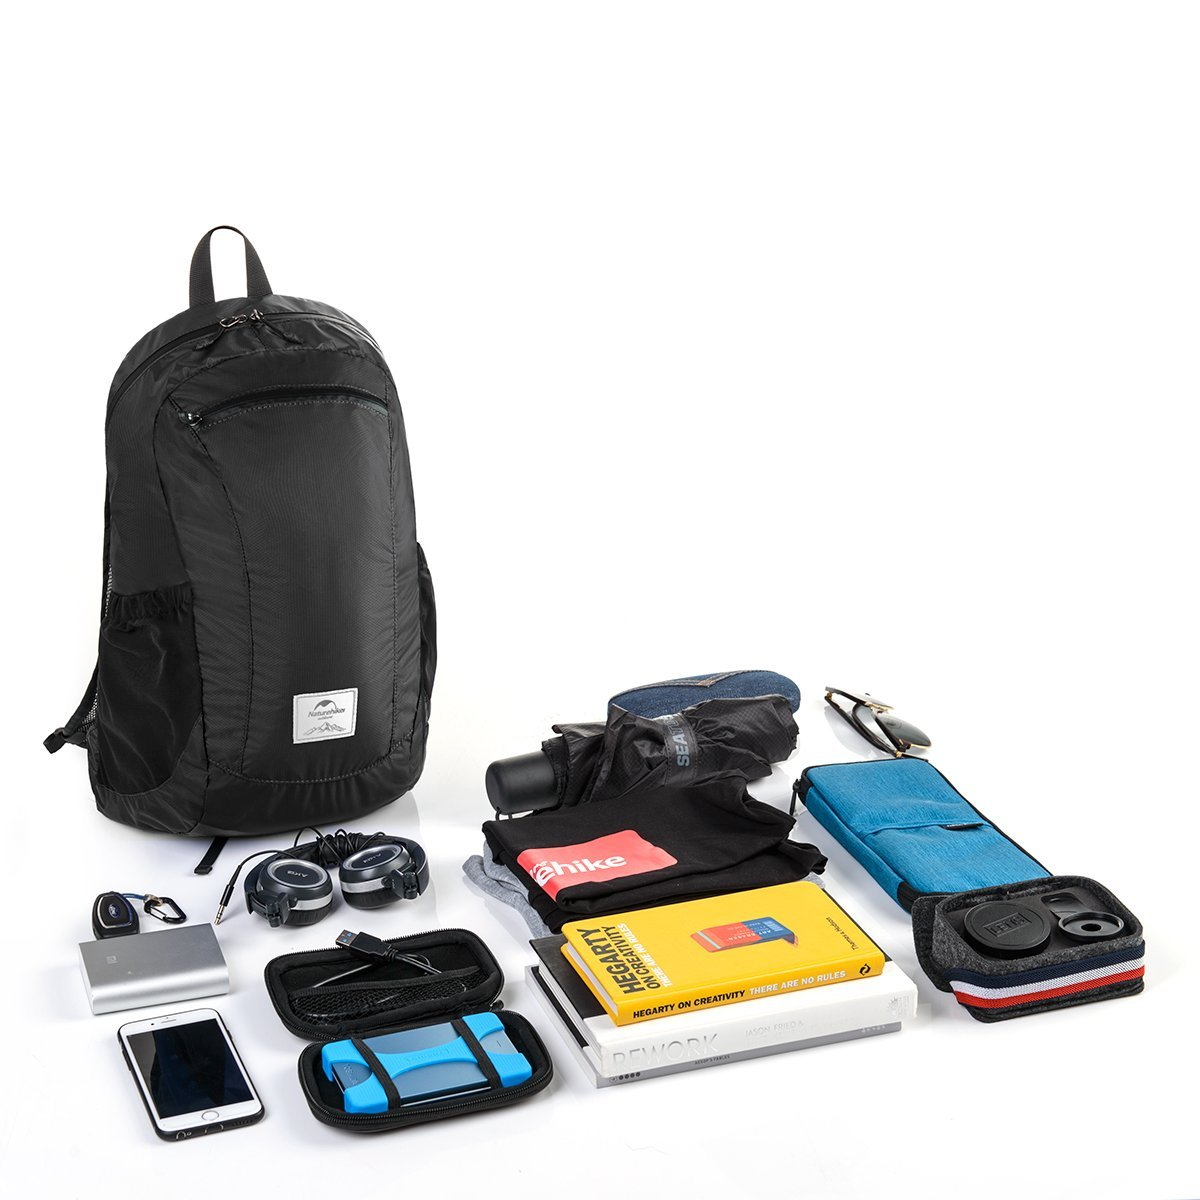 Arkadia Supply™ Foldable Lightweight Packable Backpack